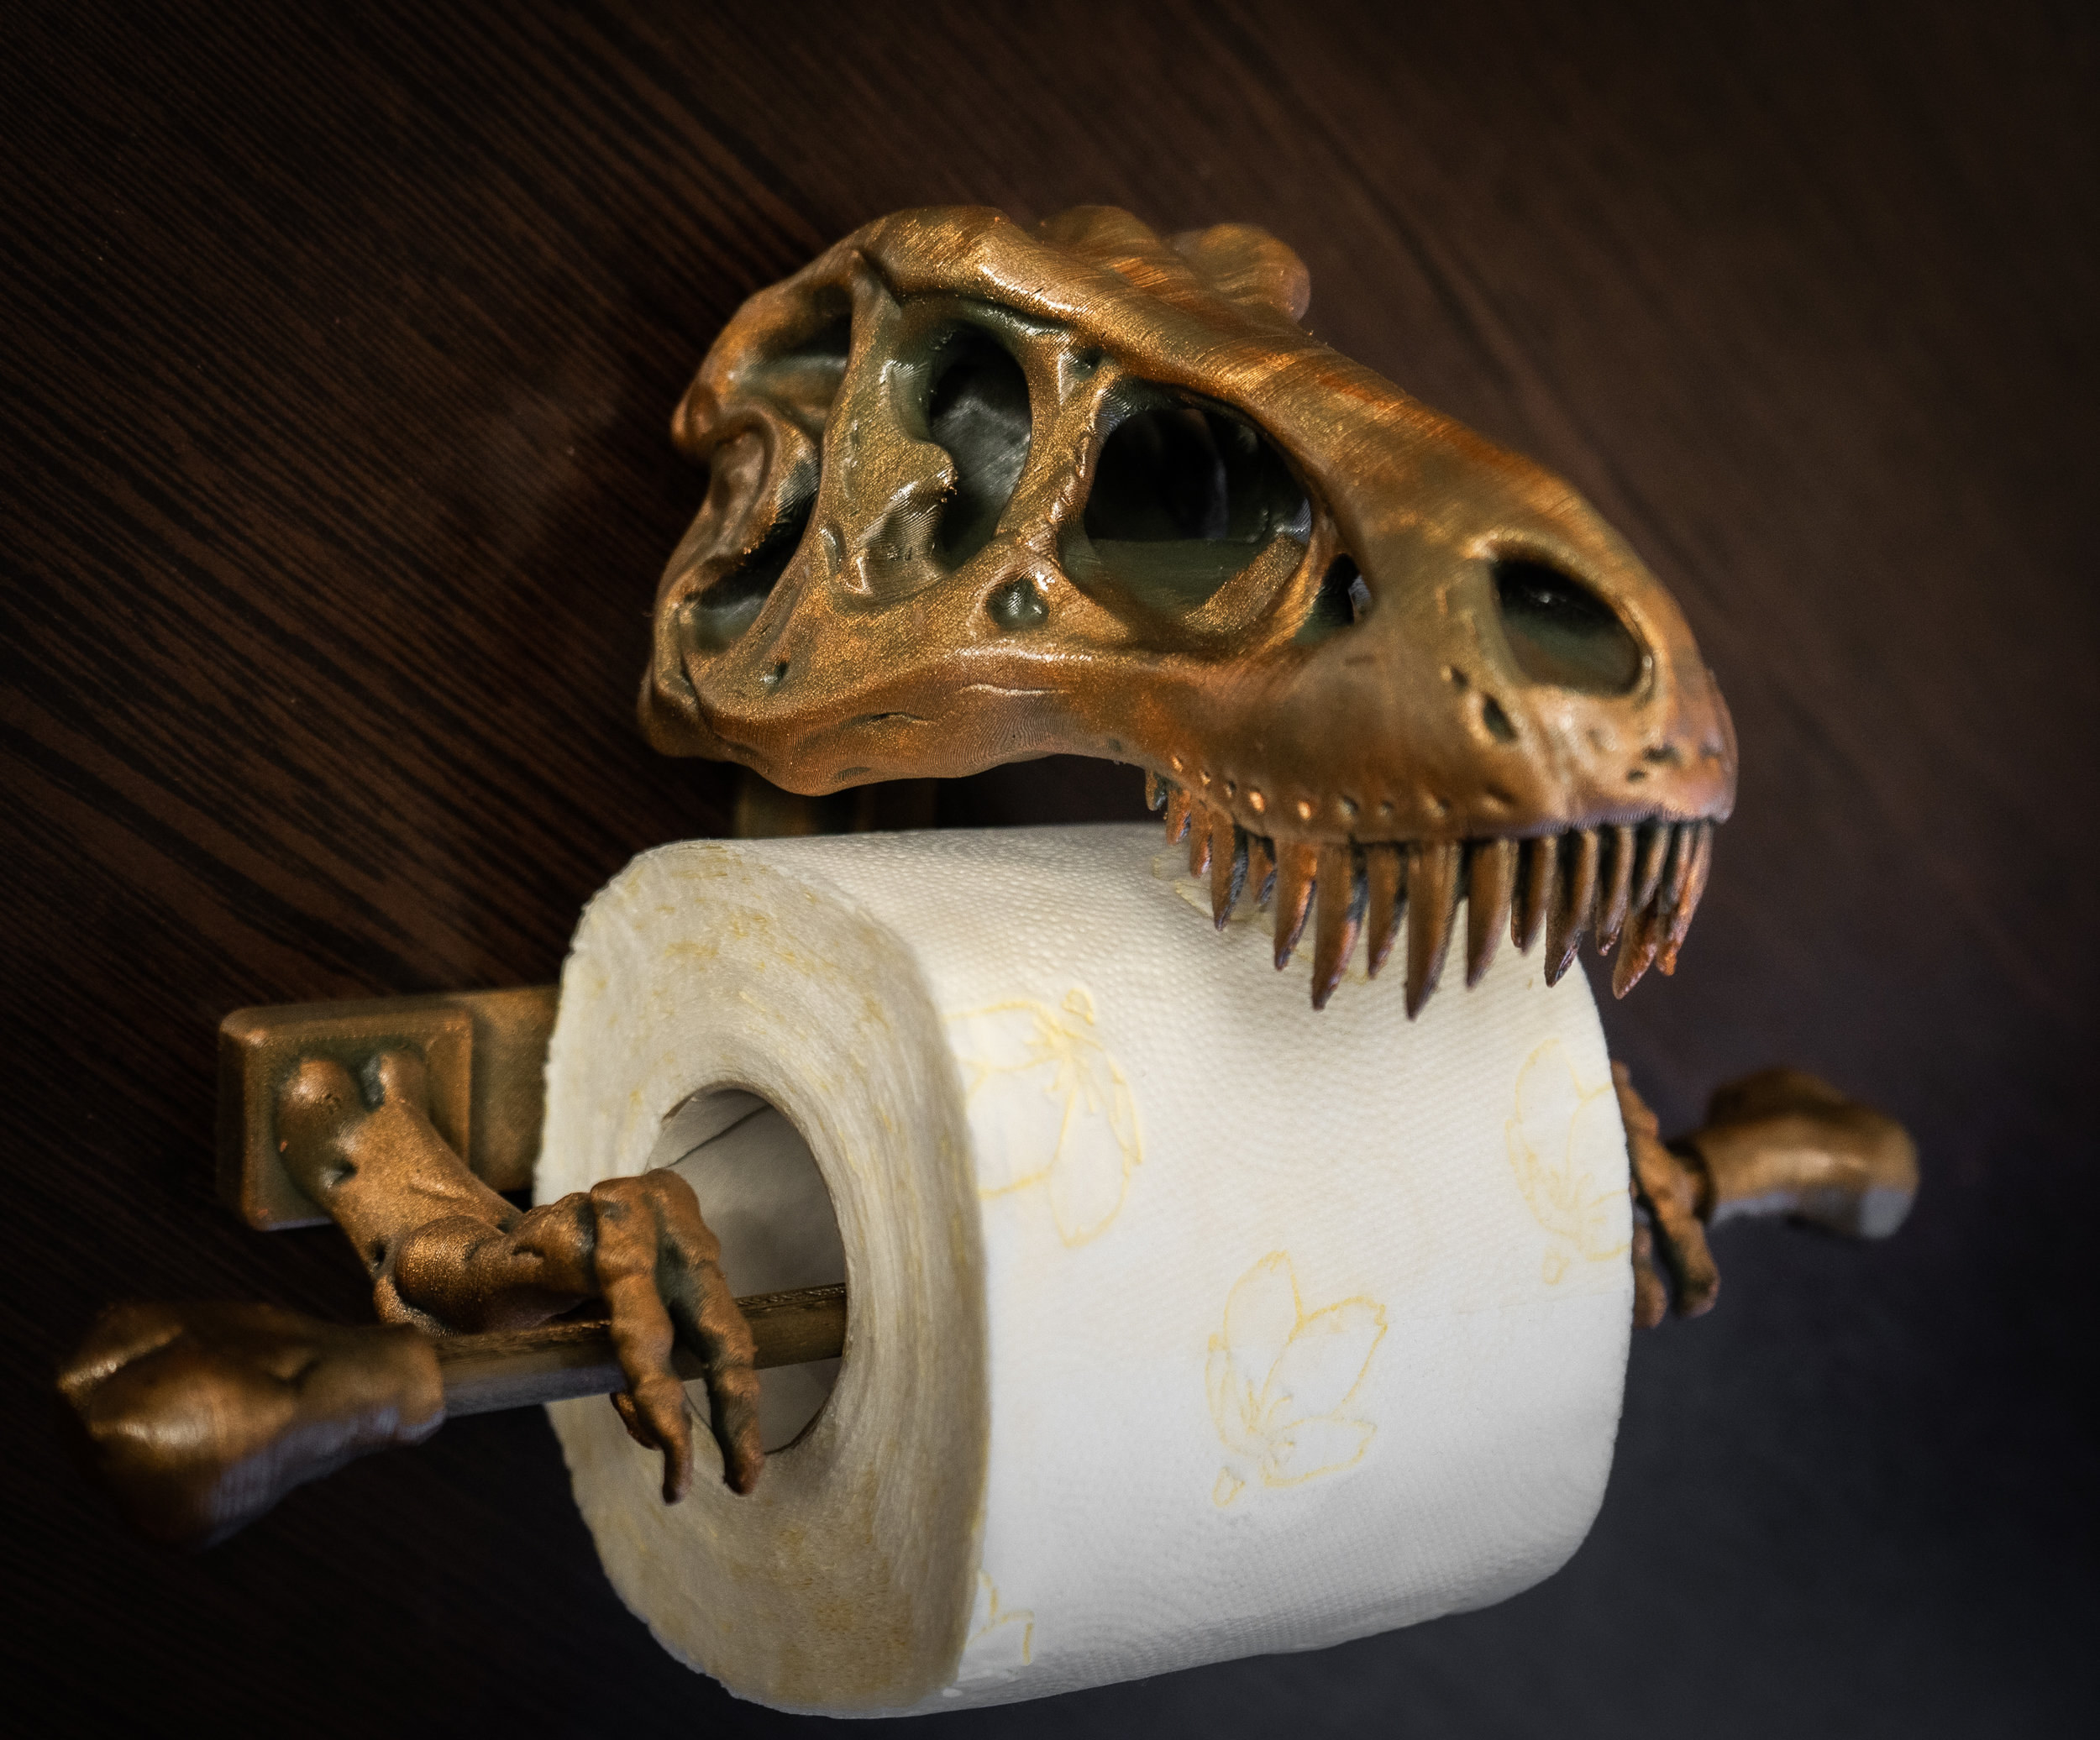 a bronze t-rex skull with little arms holding a roll of toilet paper